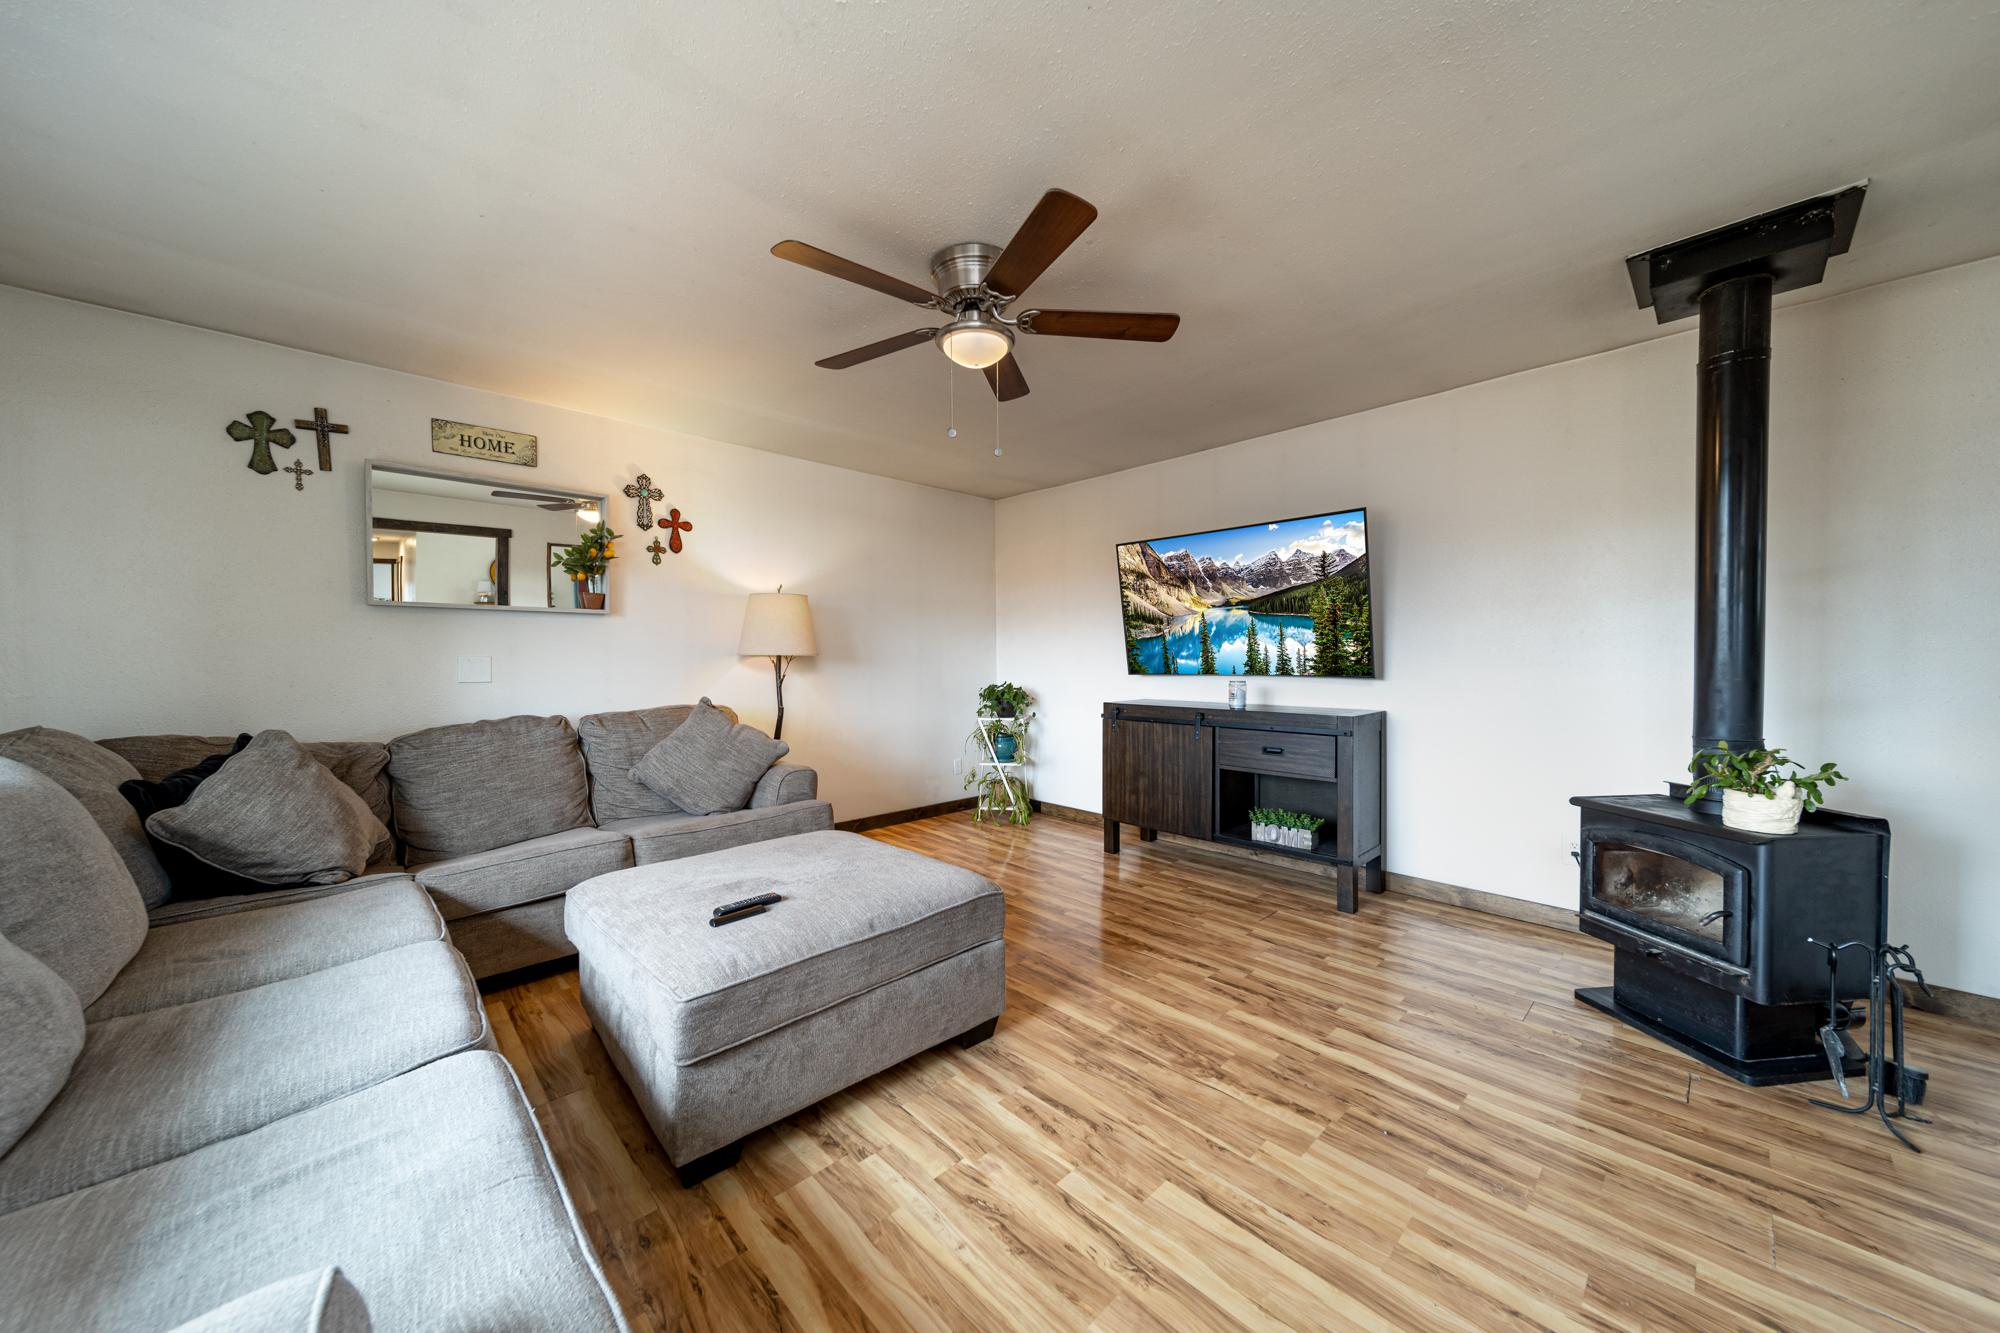 Family Room with Ceiling Fan - 1117 Centennial Dr Montrose, CO 81401 - Atha Team Real Estate